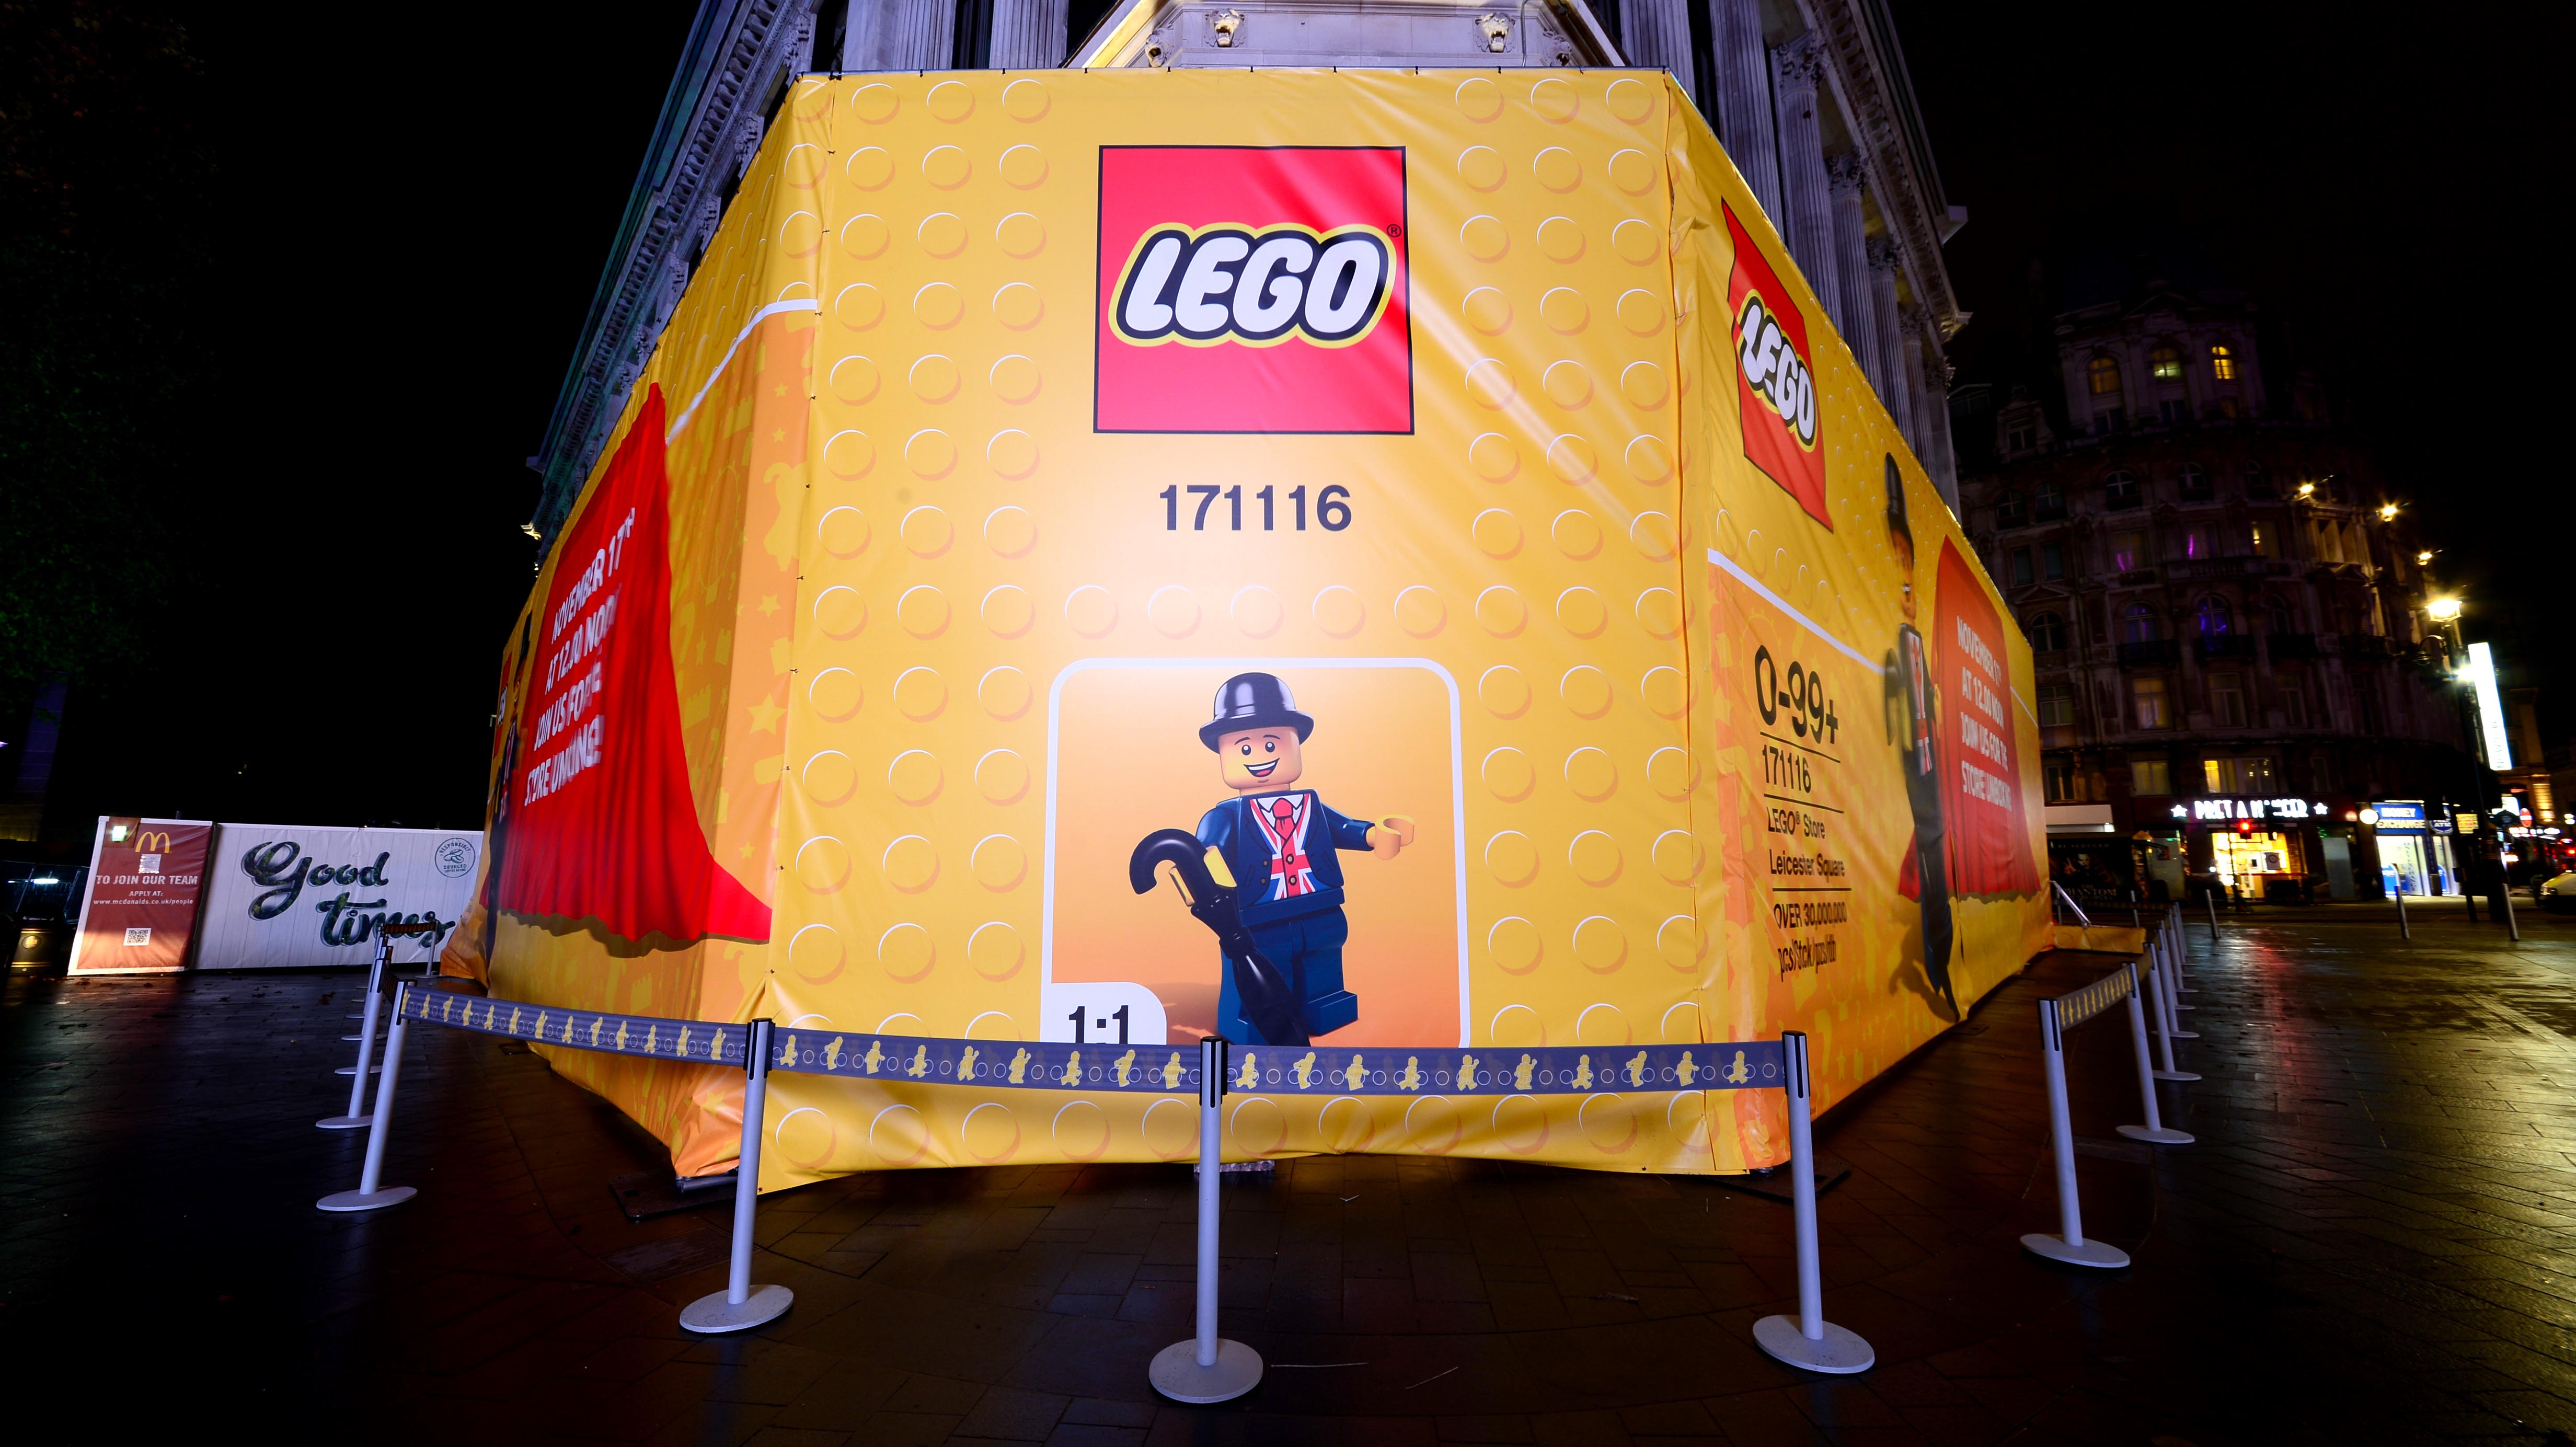 Hollywood Monster Unveils works at Lego and Piccadilly Circus